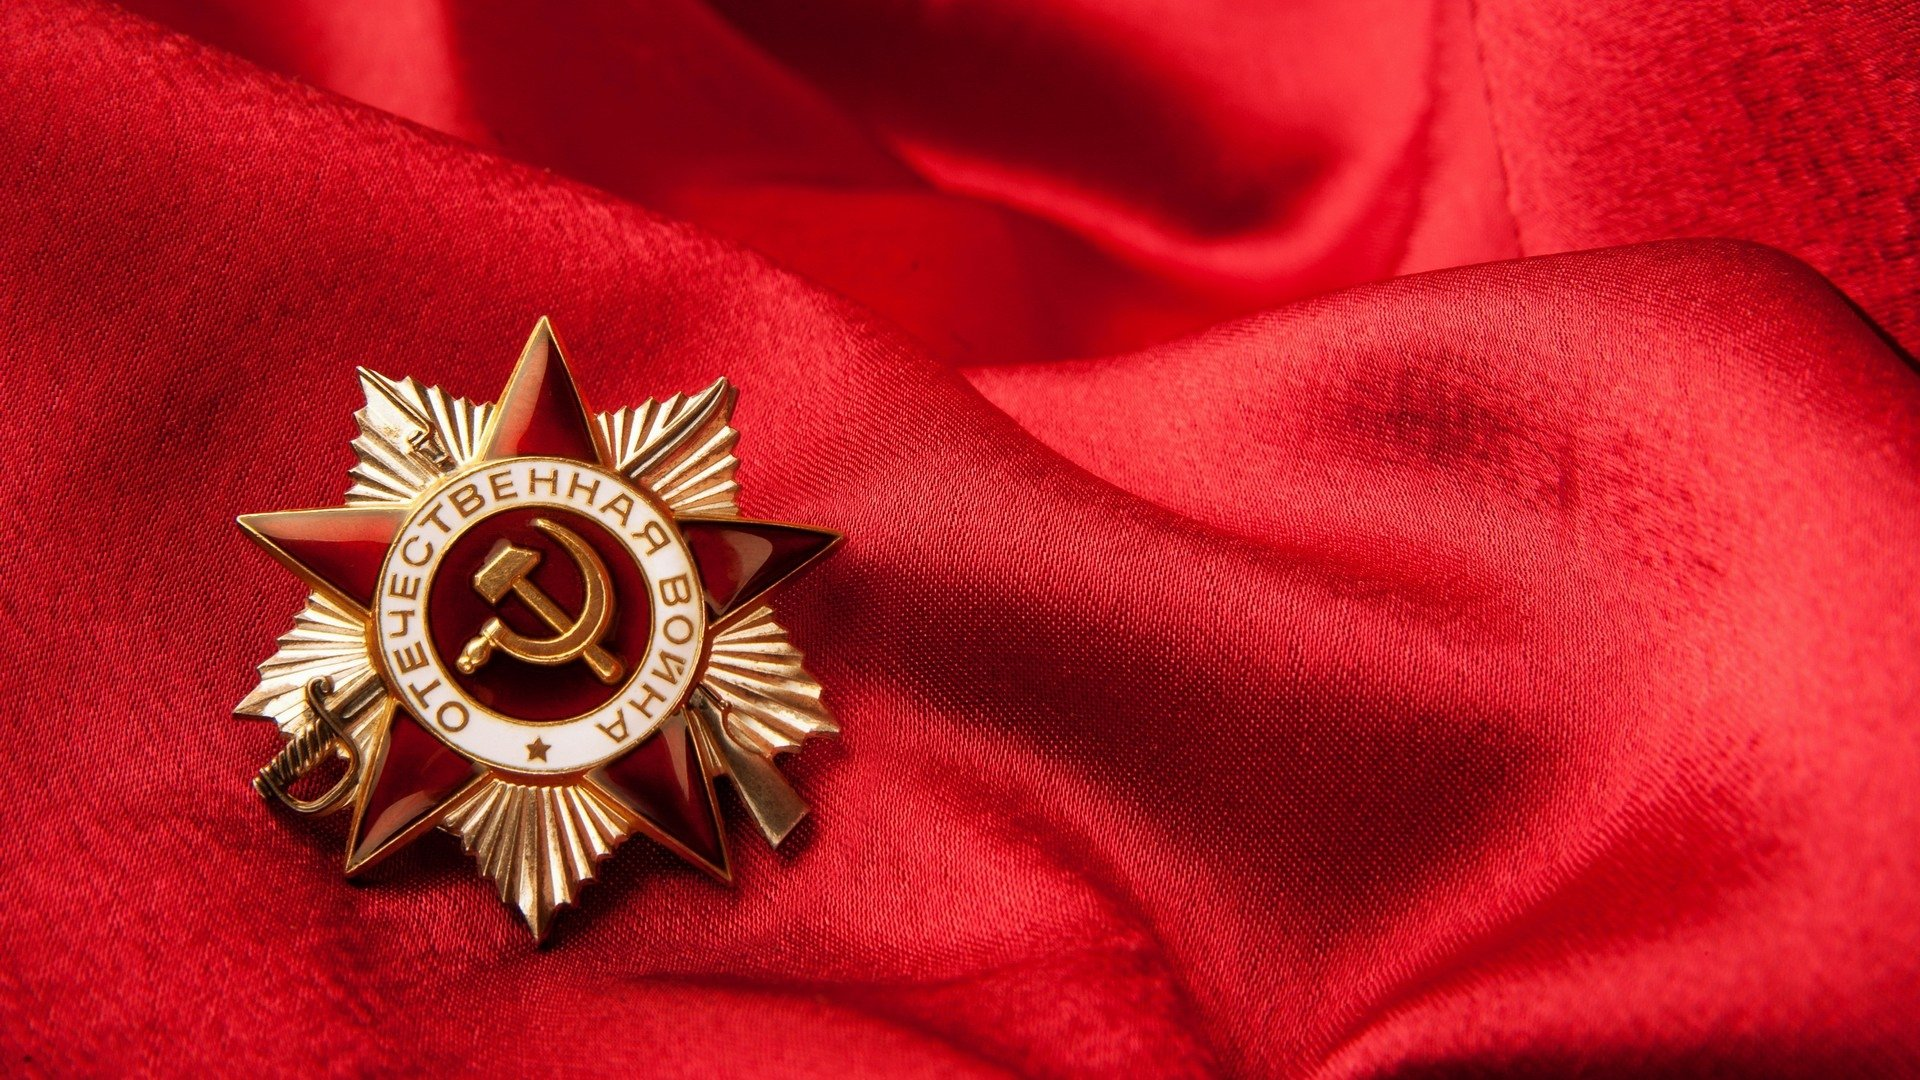 Russian army hd wallpaper background image 1920x1080 id 289714 wallpaper abyss - 4k wallpaper russia ...